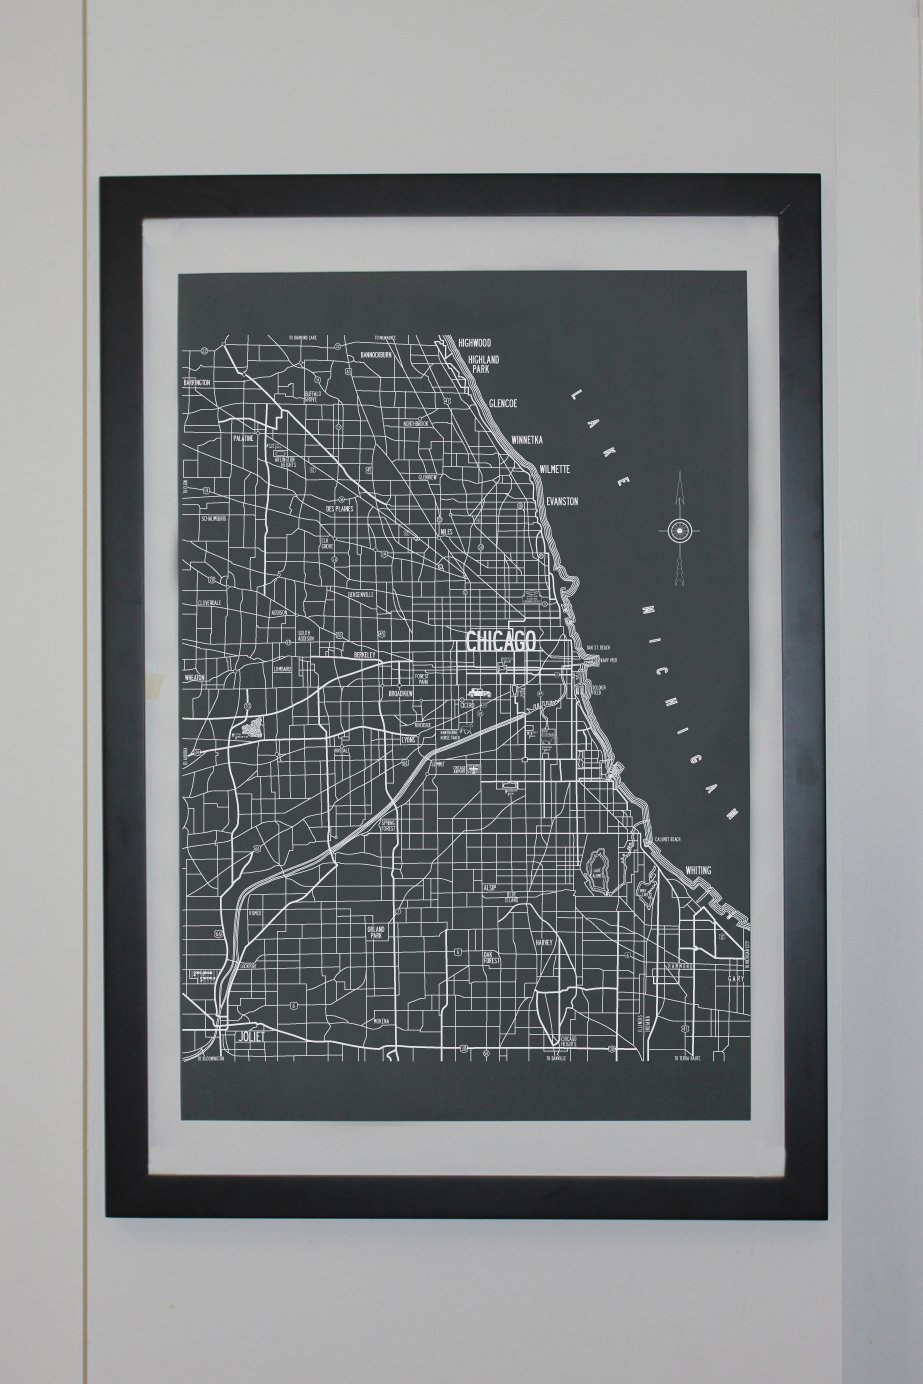 Chicago Map Canvas.Amazon Com Chicago Vintage Style Map Canvas 24 X 36 Poster Handmade